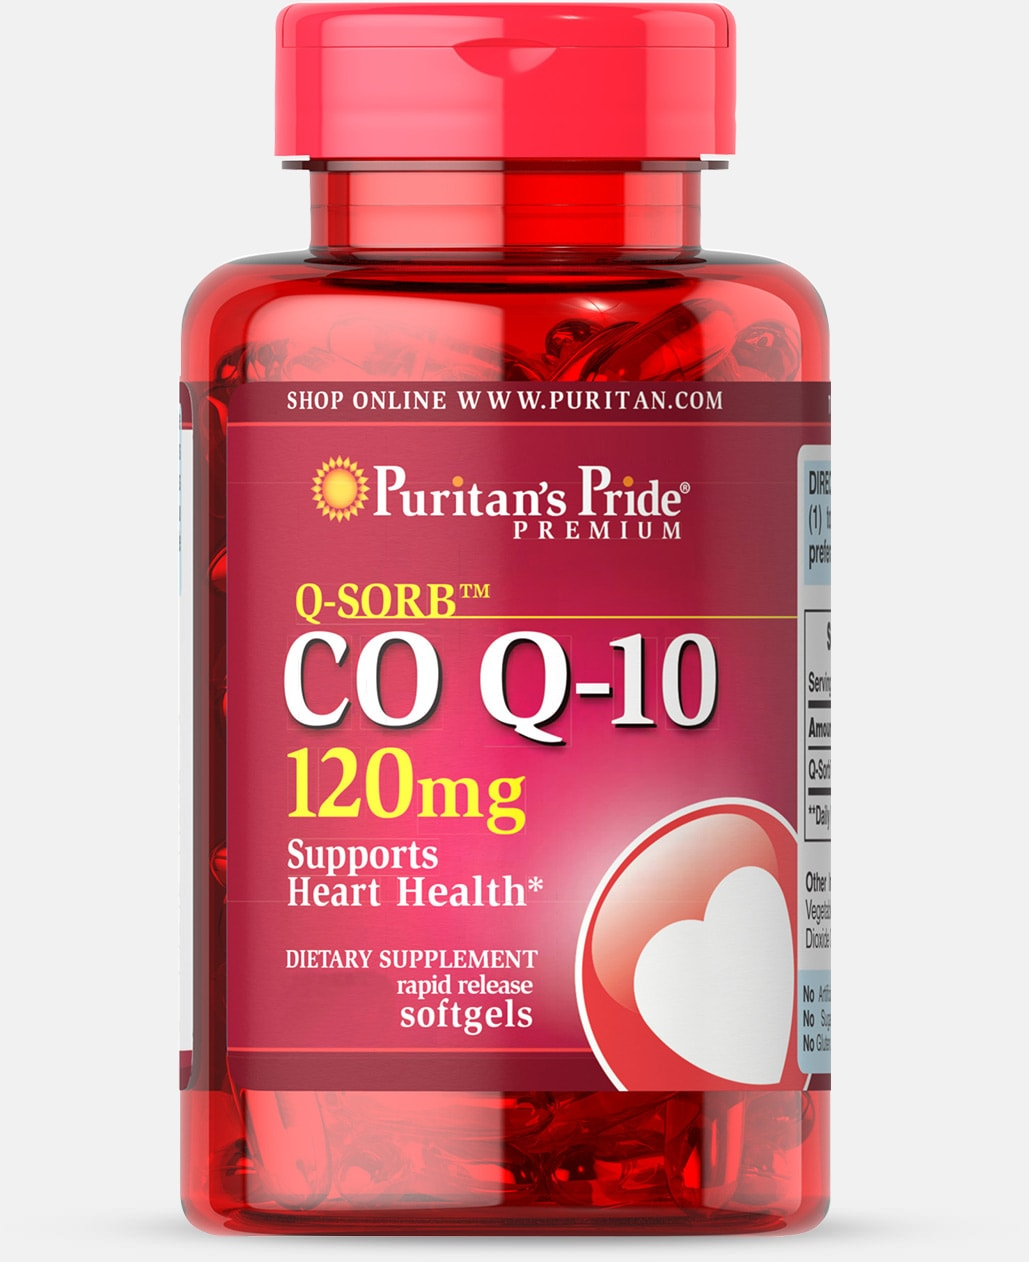 Q-SORB™ Co Q-10 120 mg